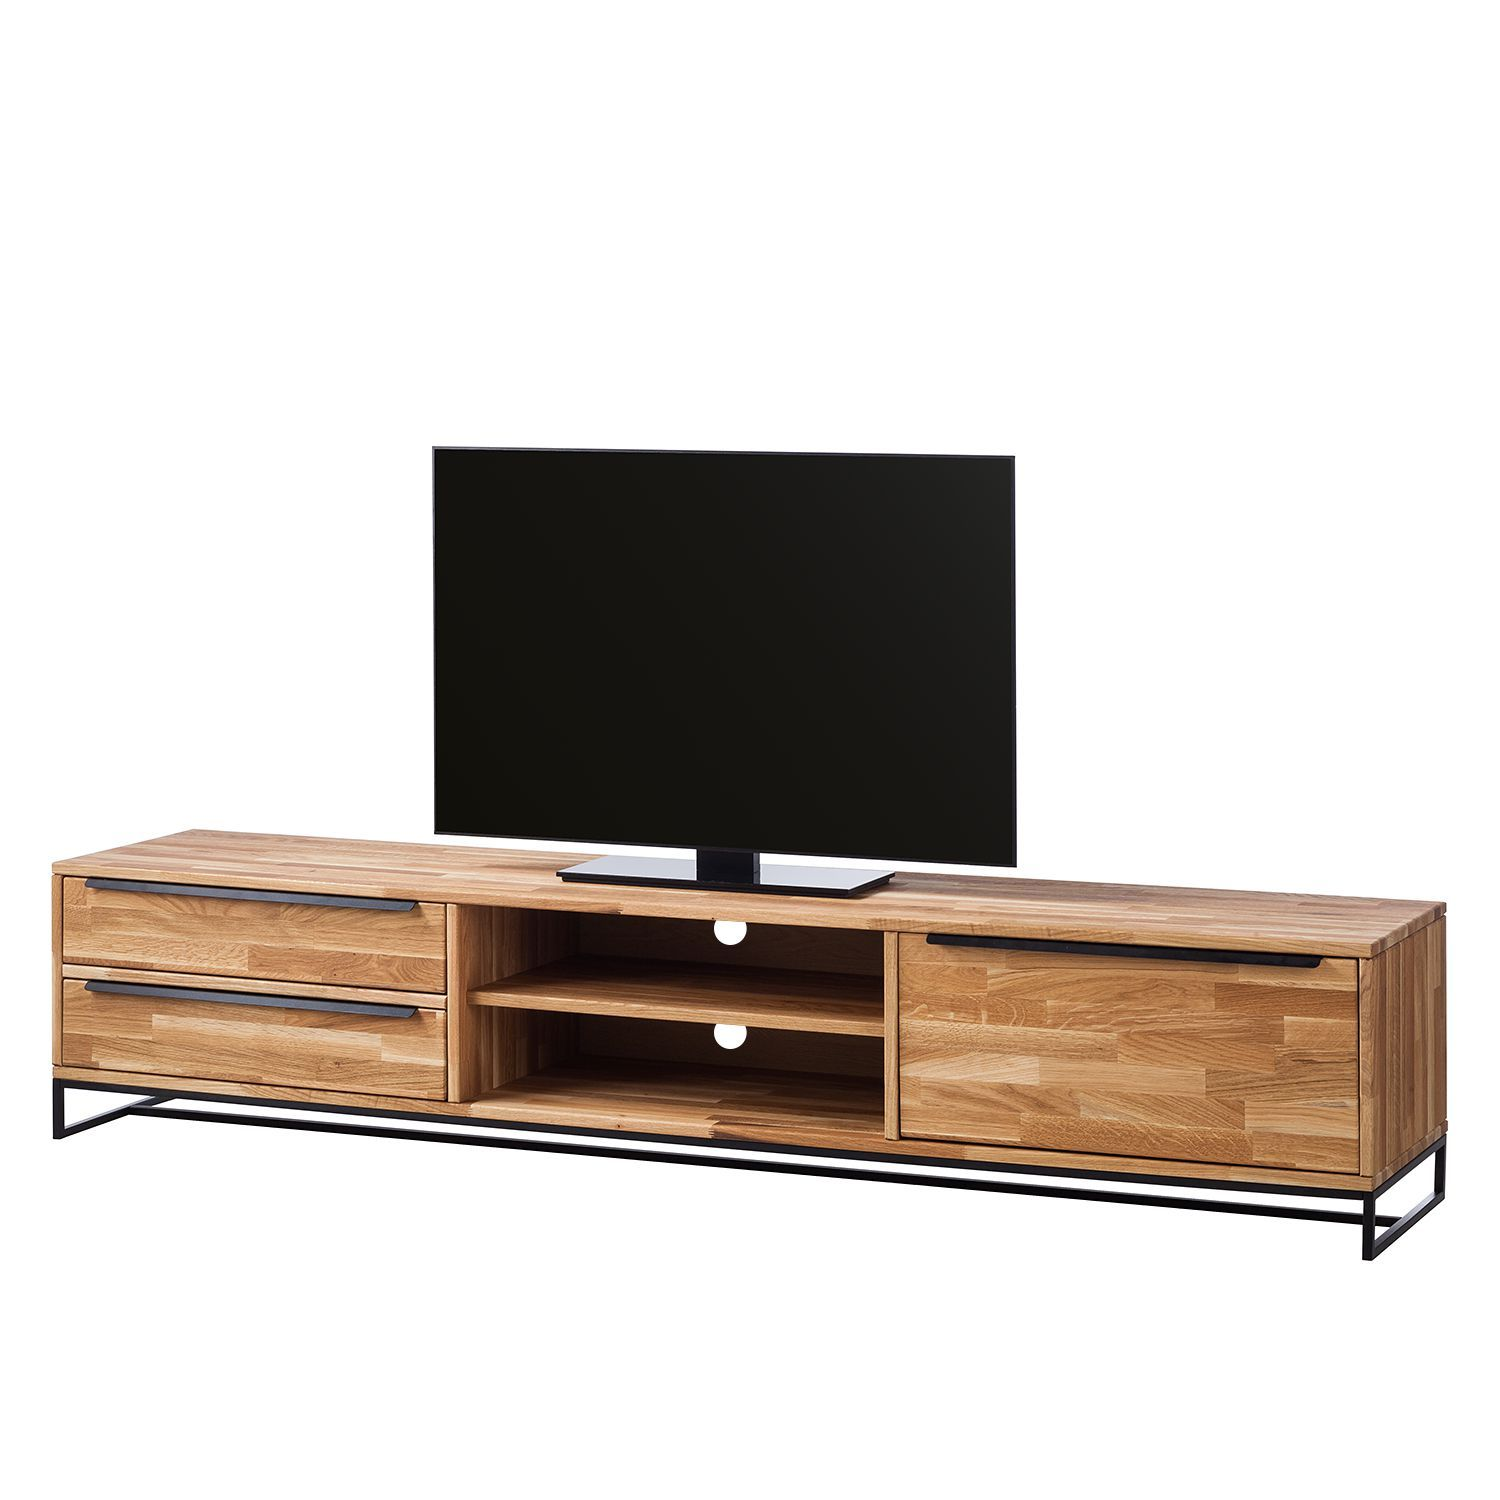 Tv Lowboard Dot Pin By Ladendirekt On Tv Hifi Möbel In 2019 Cabinet Furniture Tv